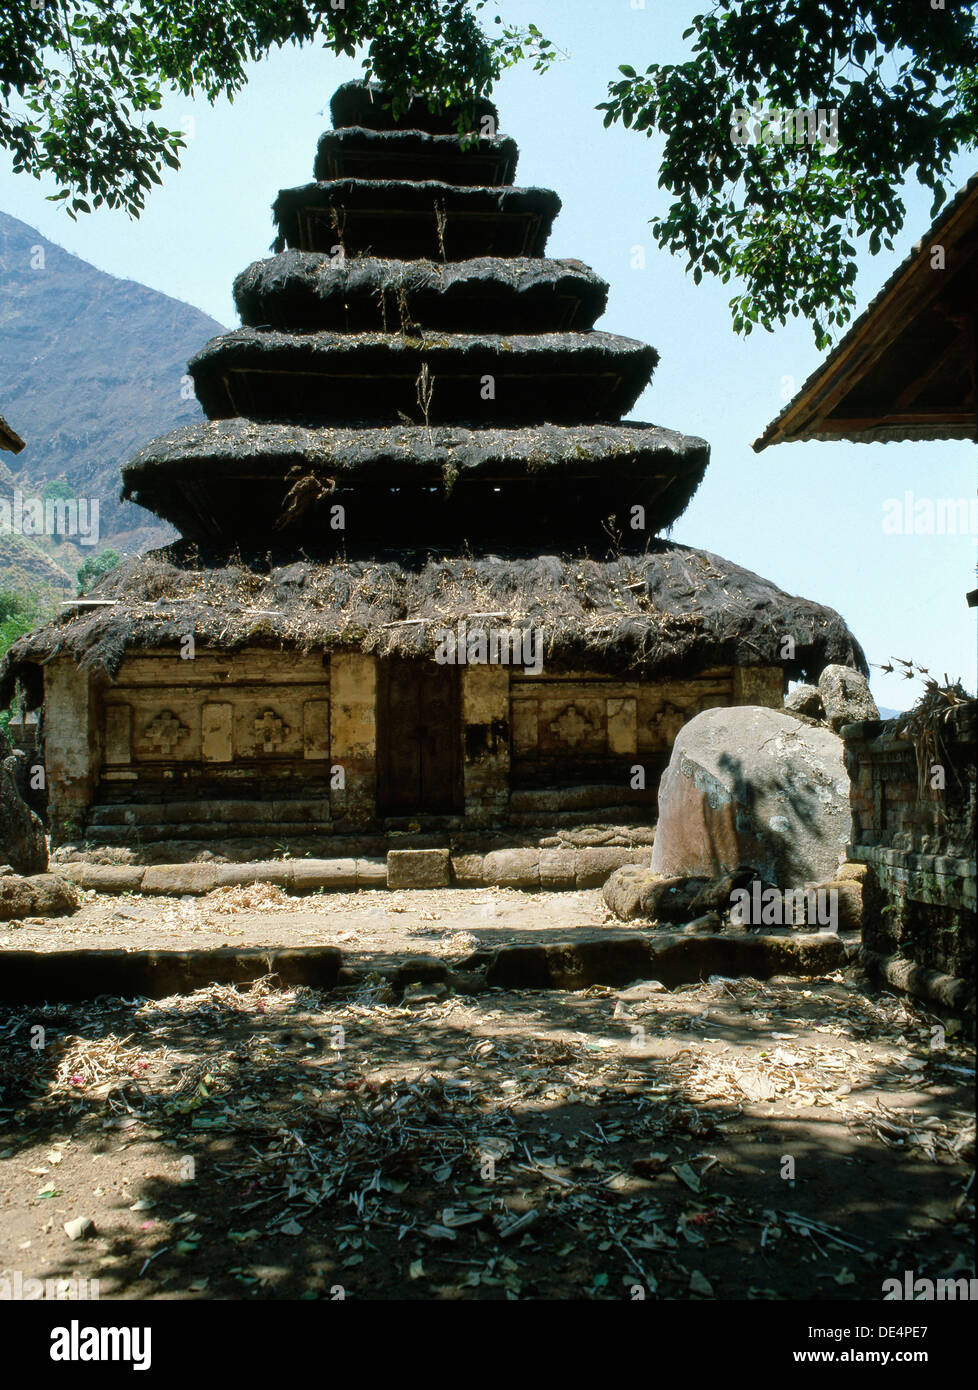 Pagoda roofed shrines at the Pura Danu Bratan recall the cosmic mountain, a concept shared by both Hinduism and Buddhist cosmolo - Stock Image